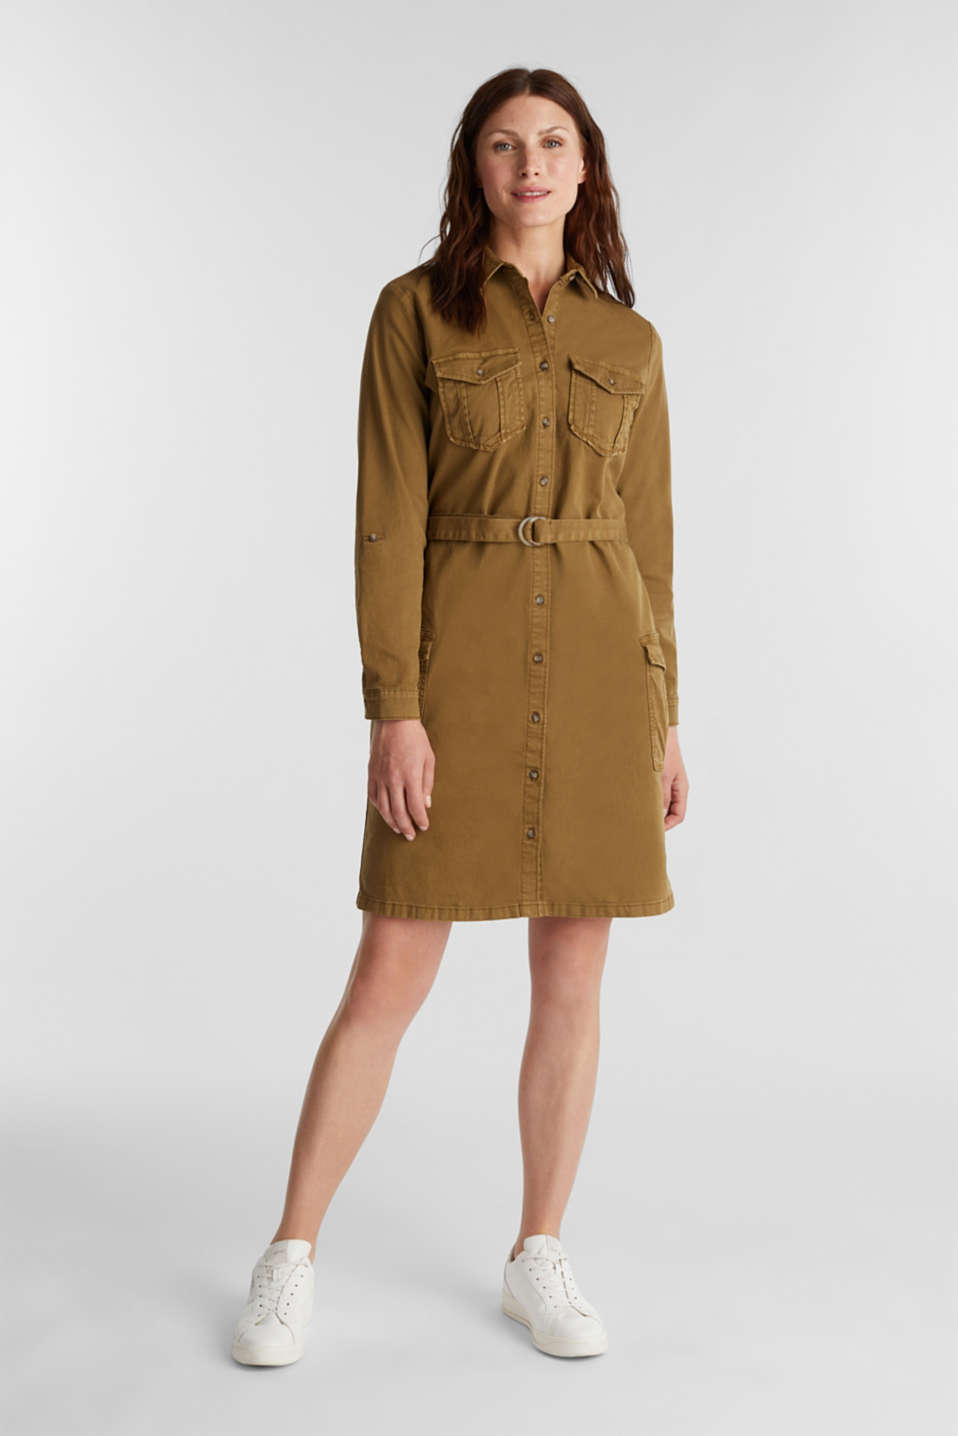 Esprit - EarthColors® dress in a utility style